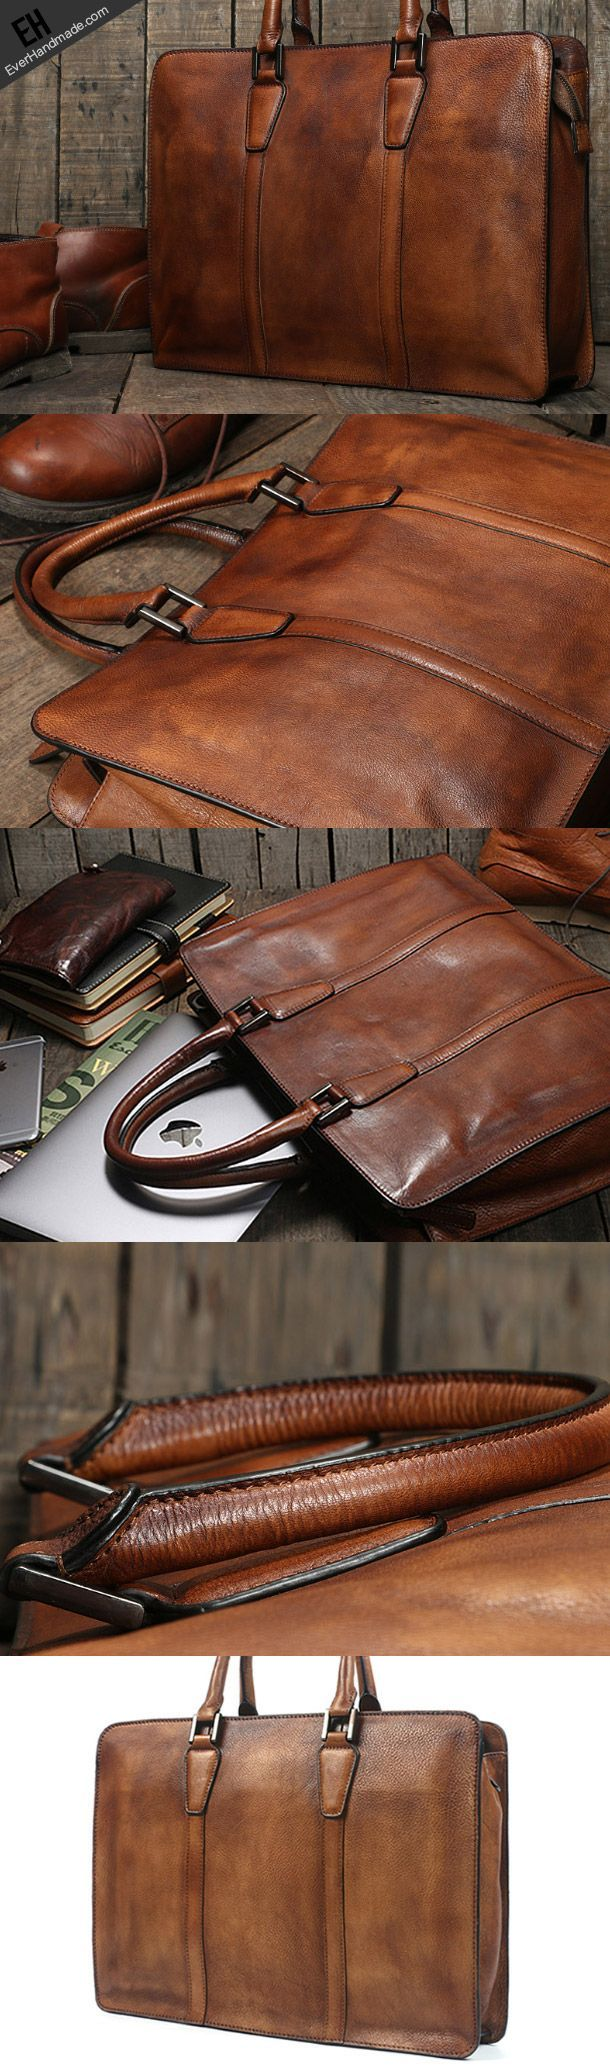 www.maisonjaccollection.com Welcome to Maison Jac Collection Lifestyle Brand. We are dedicated to supporting and promoting independent suppliers and product manufacturers in the sale of their products around the world.